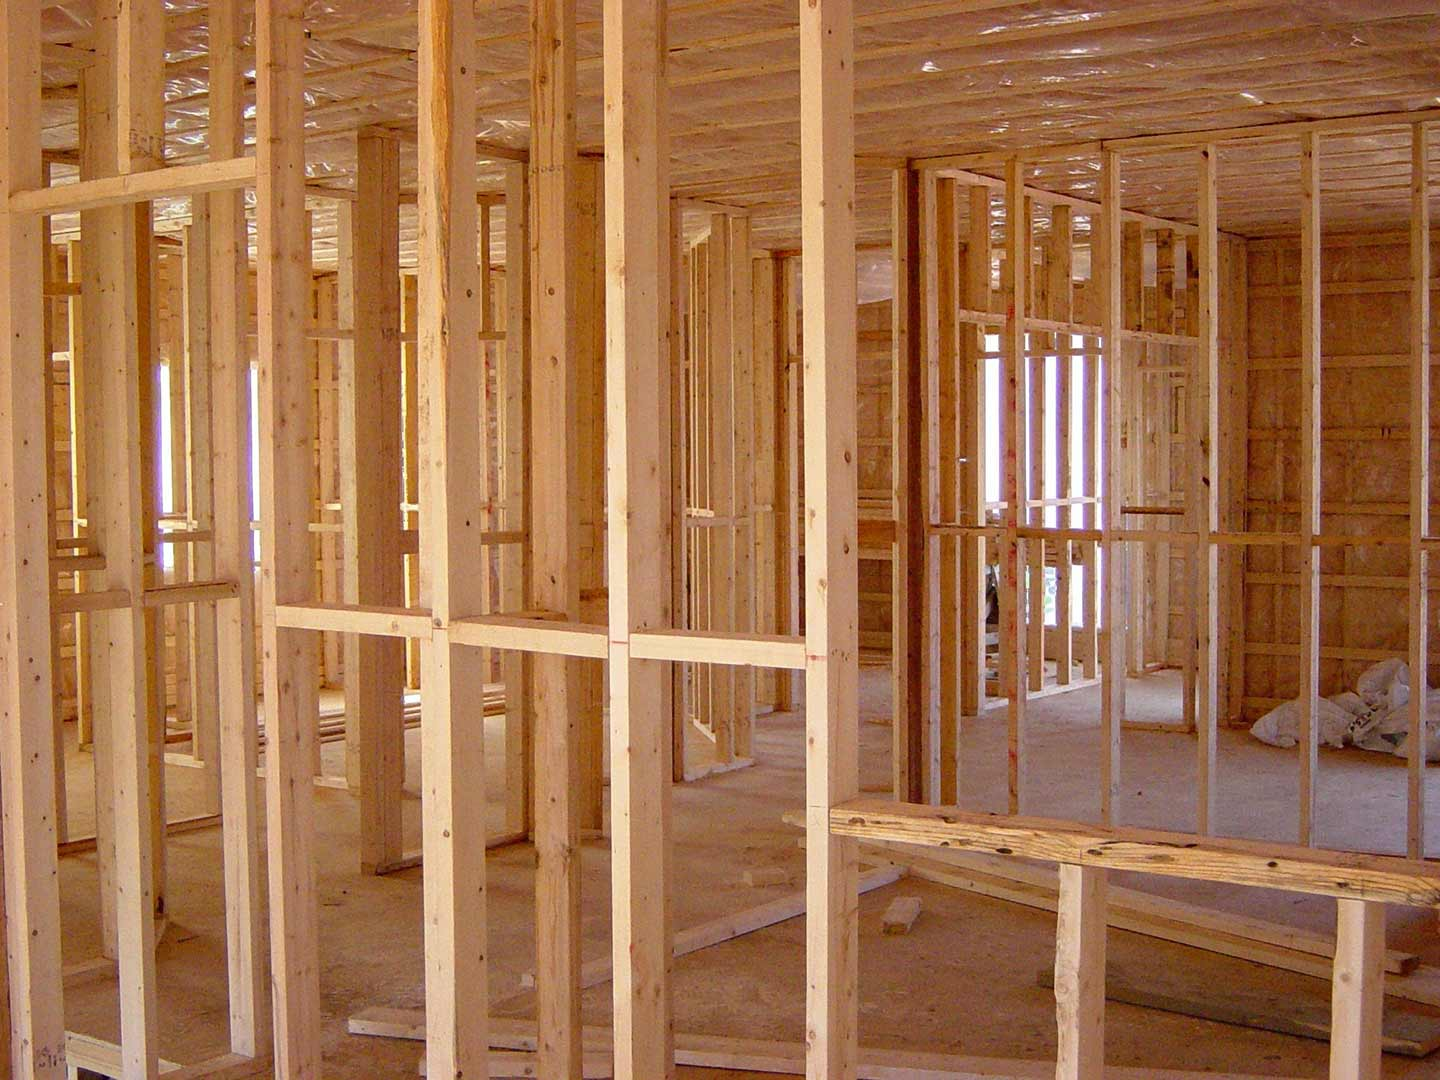 Use of Timber in Construction & Architecture